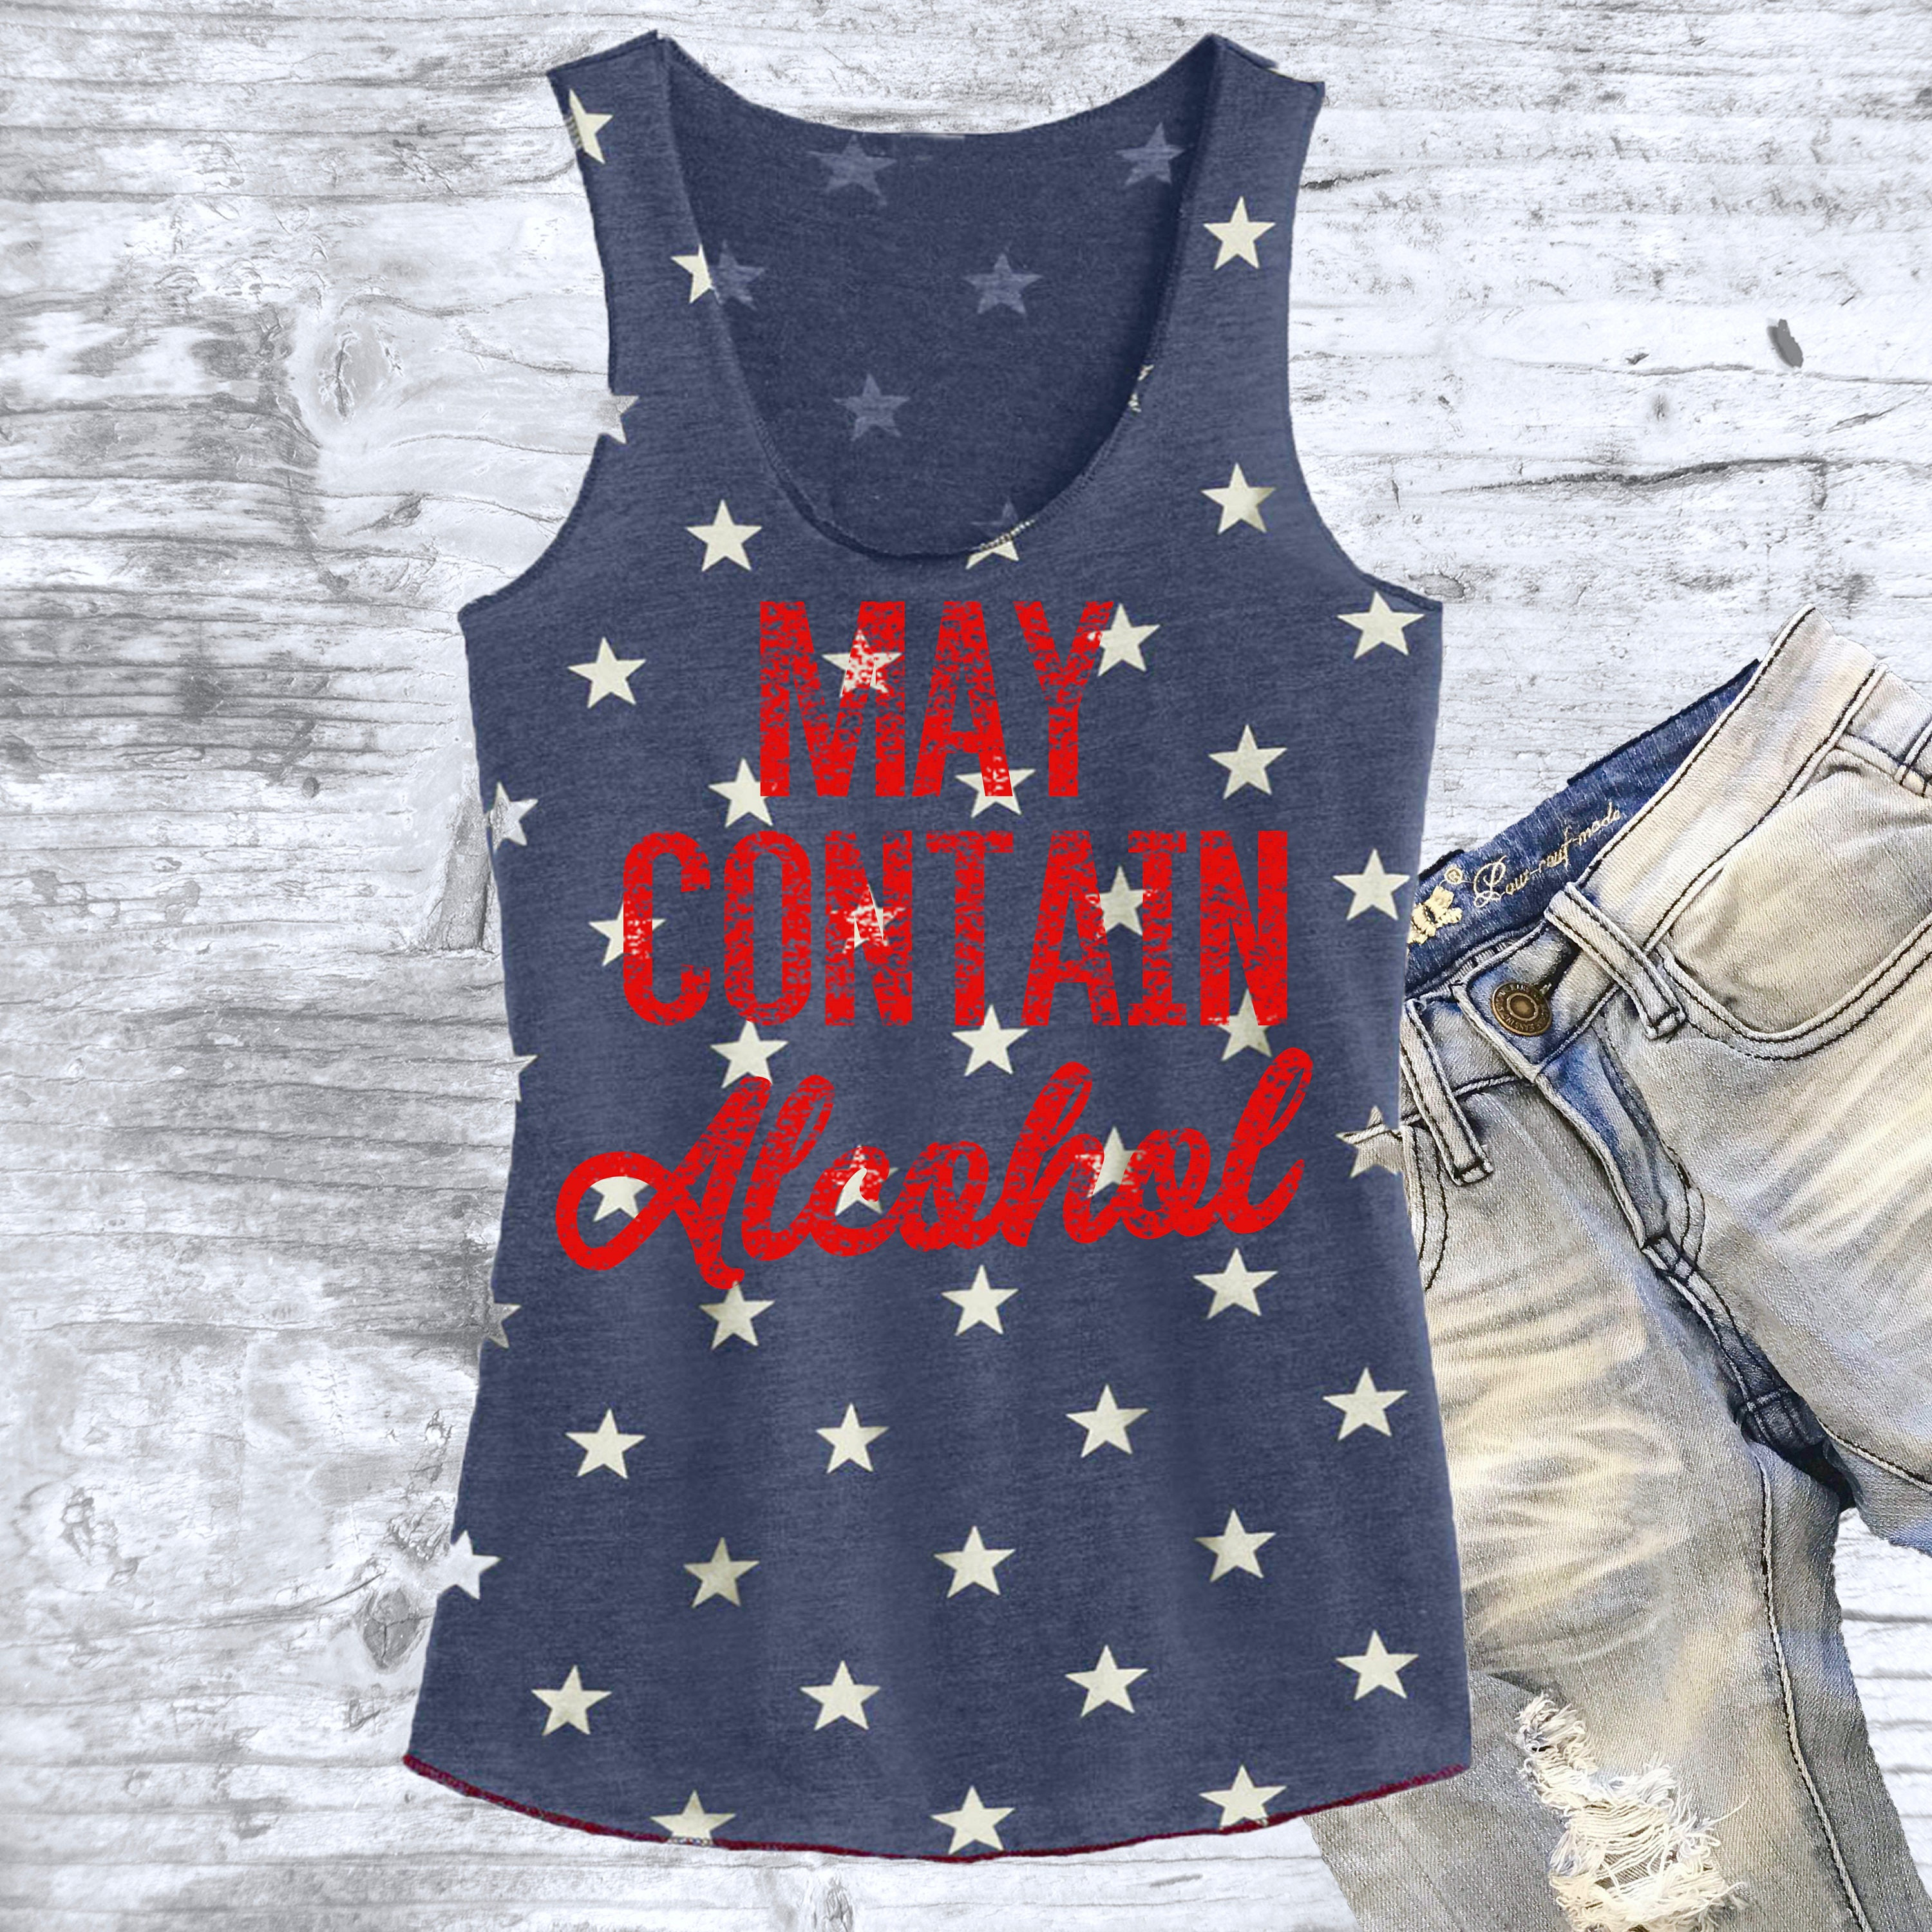 May Contain Alcohol Drinking Shirt. Summer tank top. 4th of